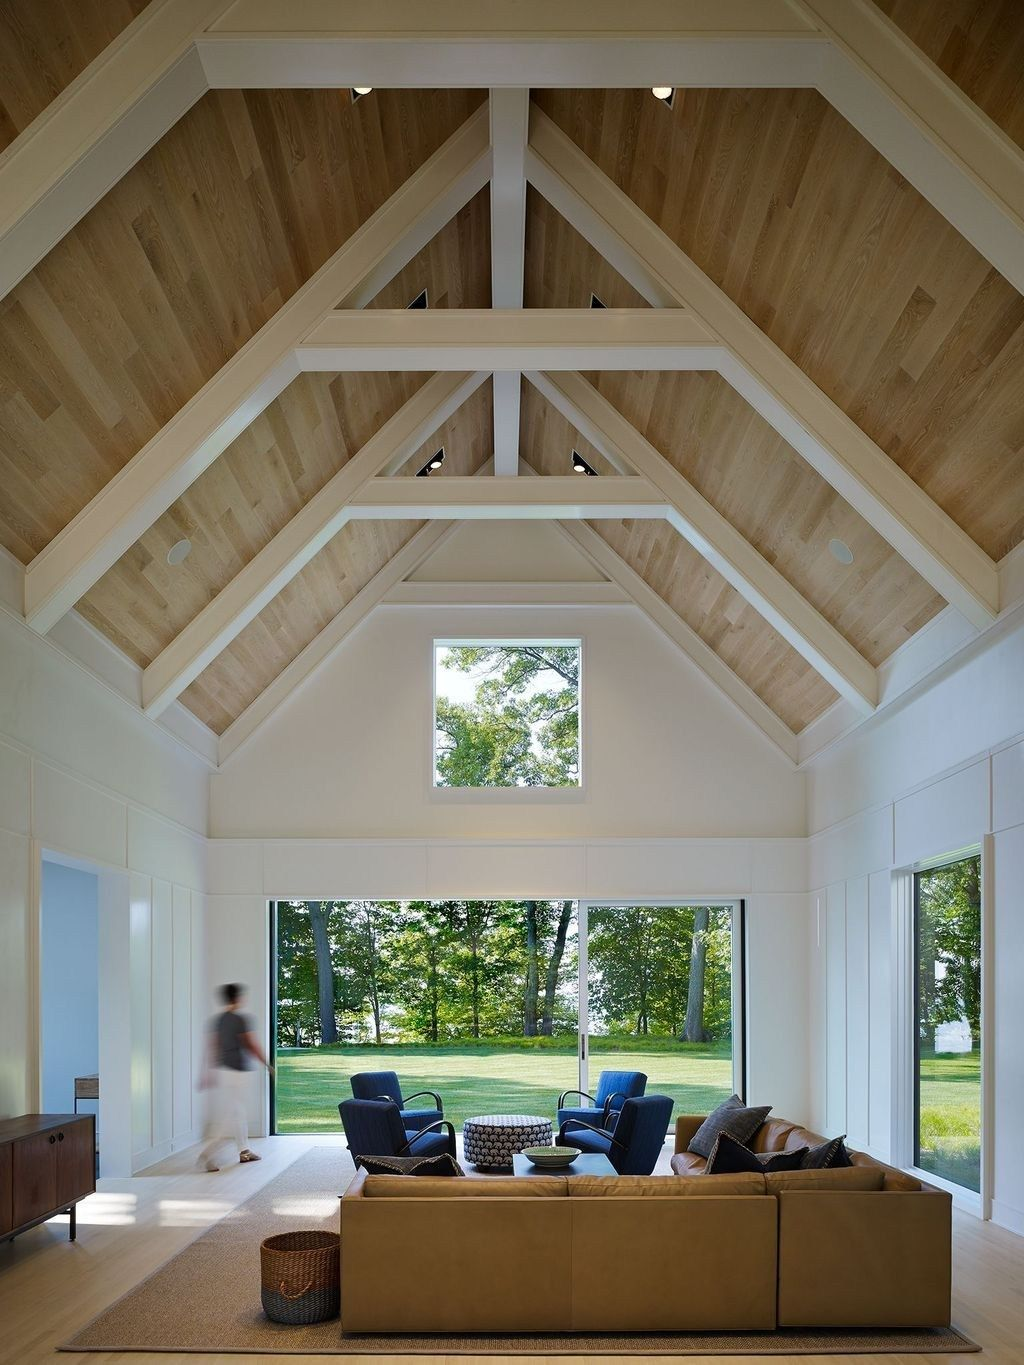 46 The Best Vaulted Ceiling Living Room Design Ideas images